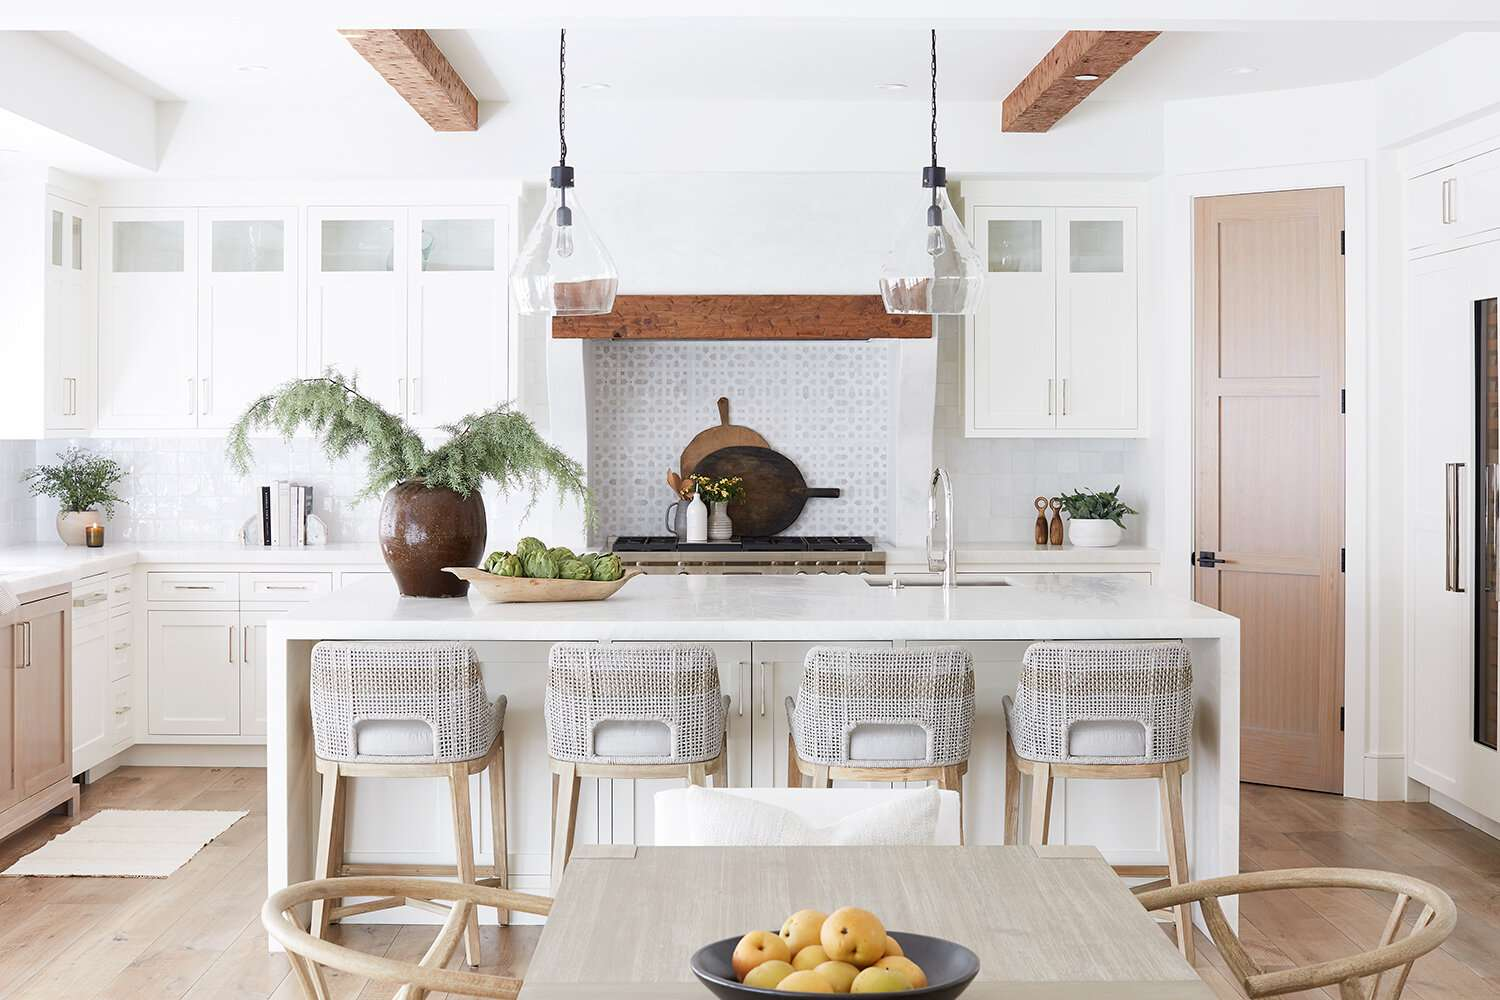 A kitchen lined with two kinds of tiles: classic white tiles and light gray printed ones